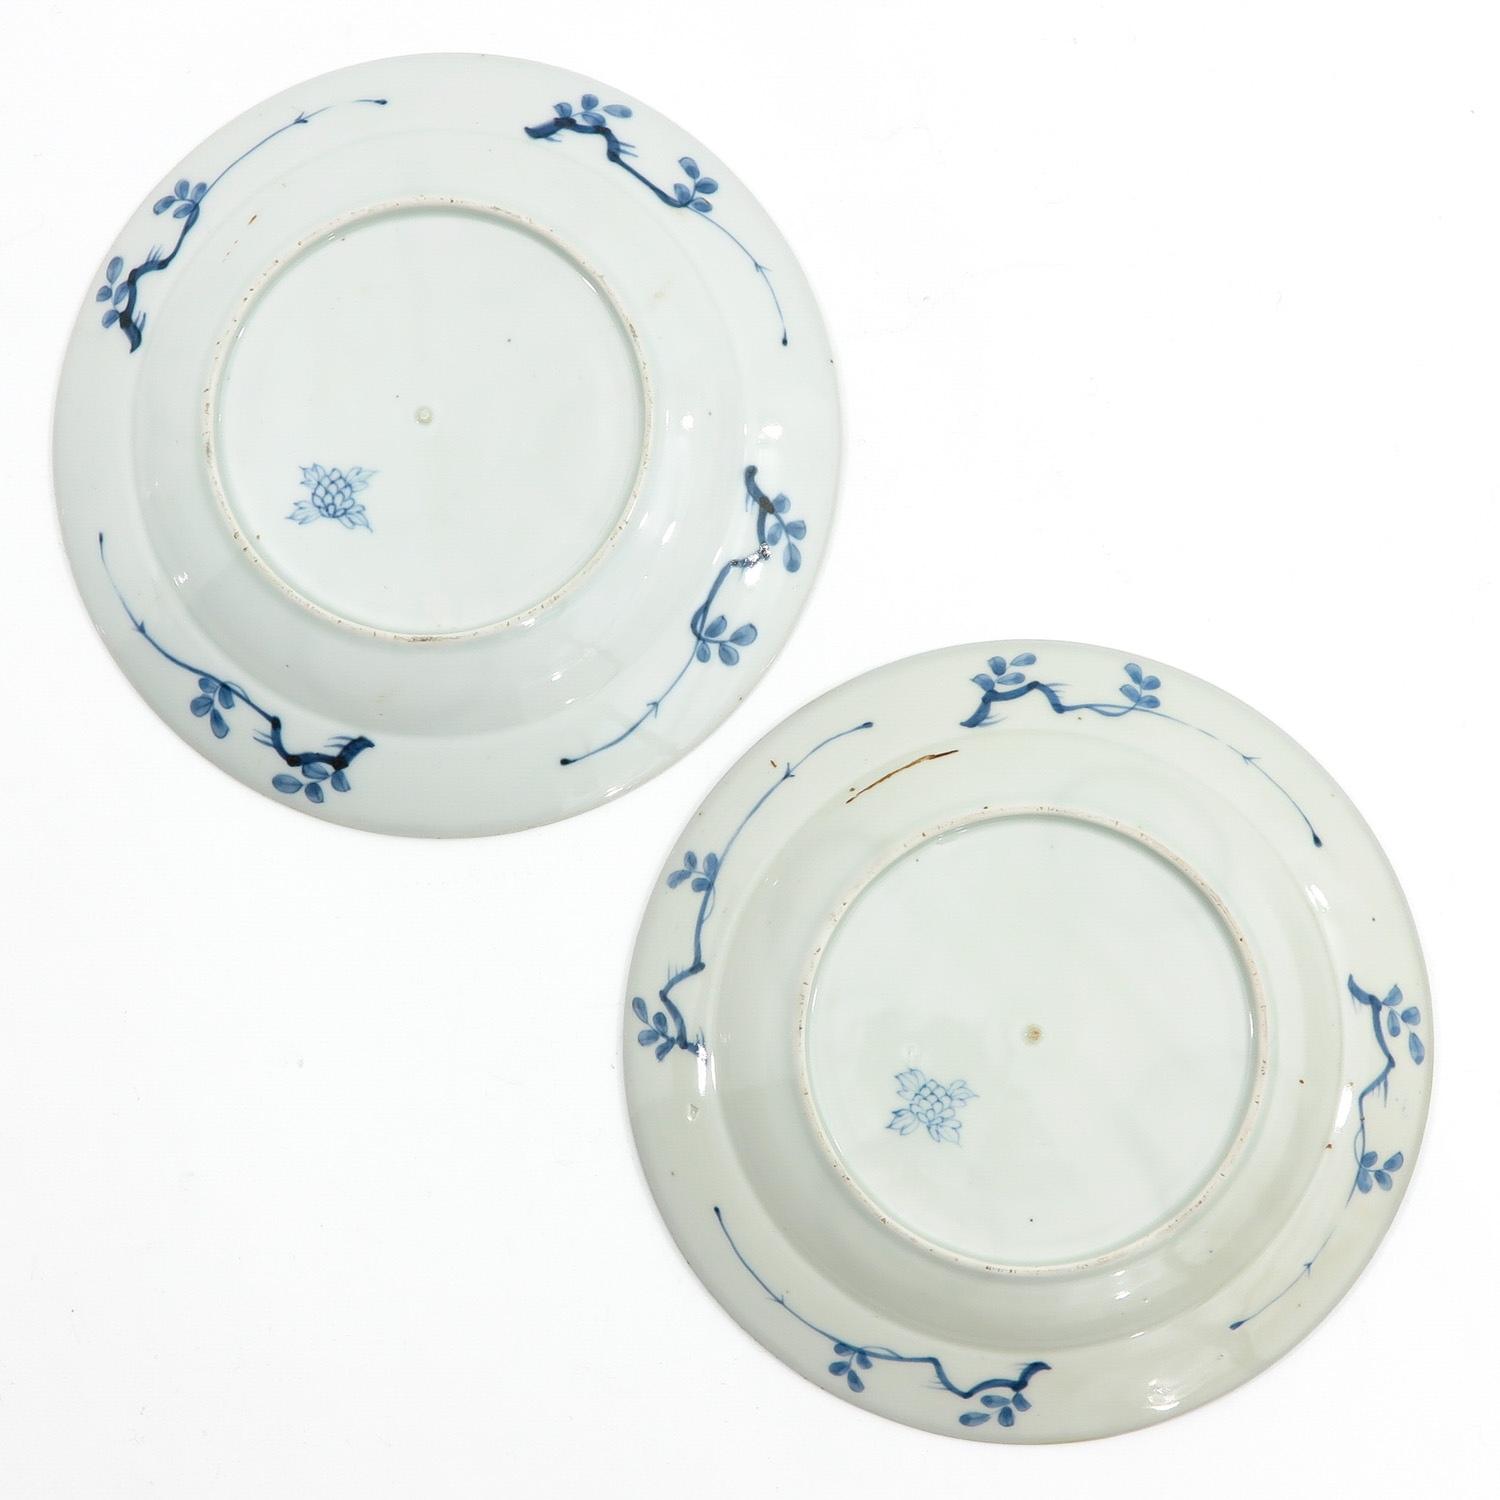 A Series of 6 Blue and White Plates - Image 6 of 10